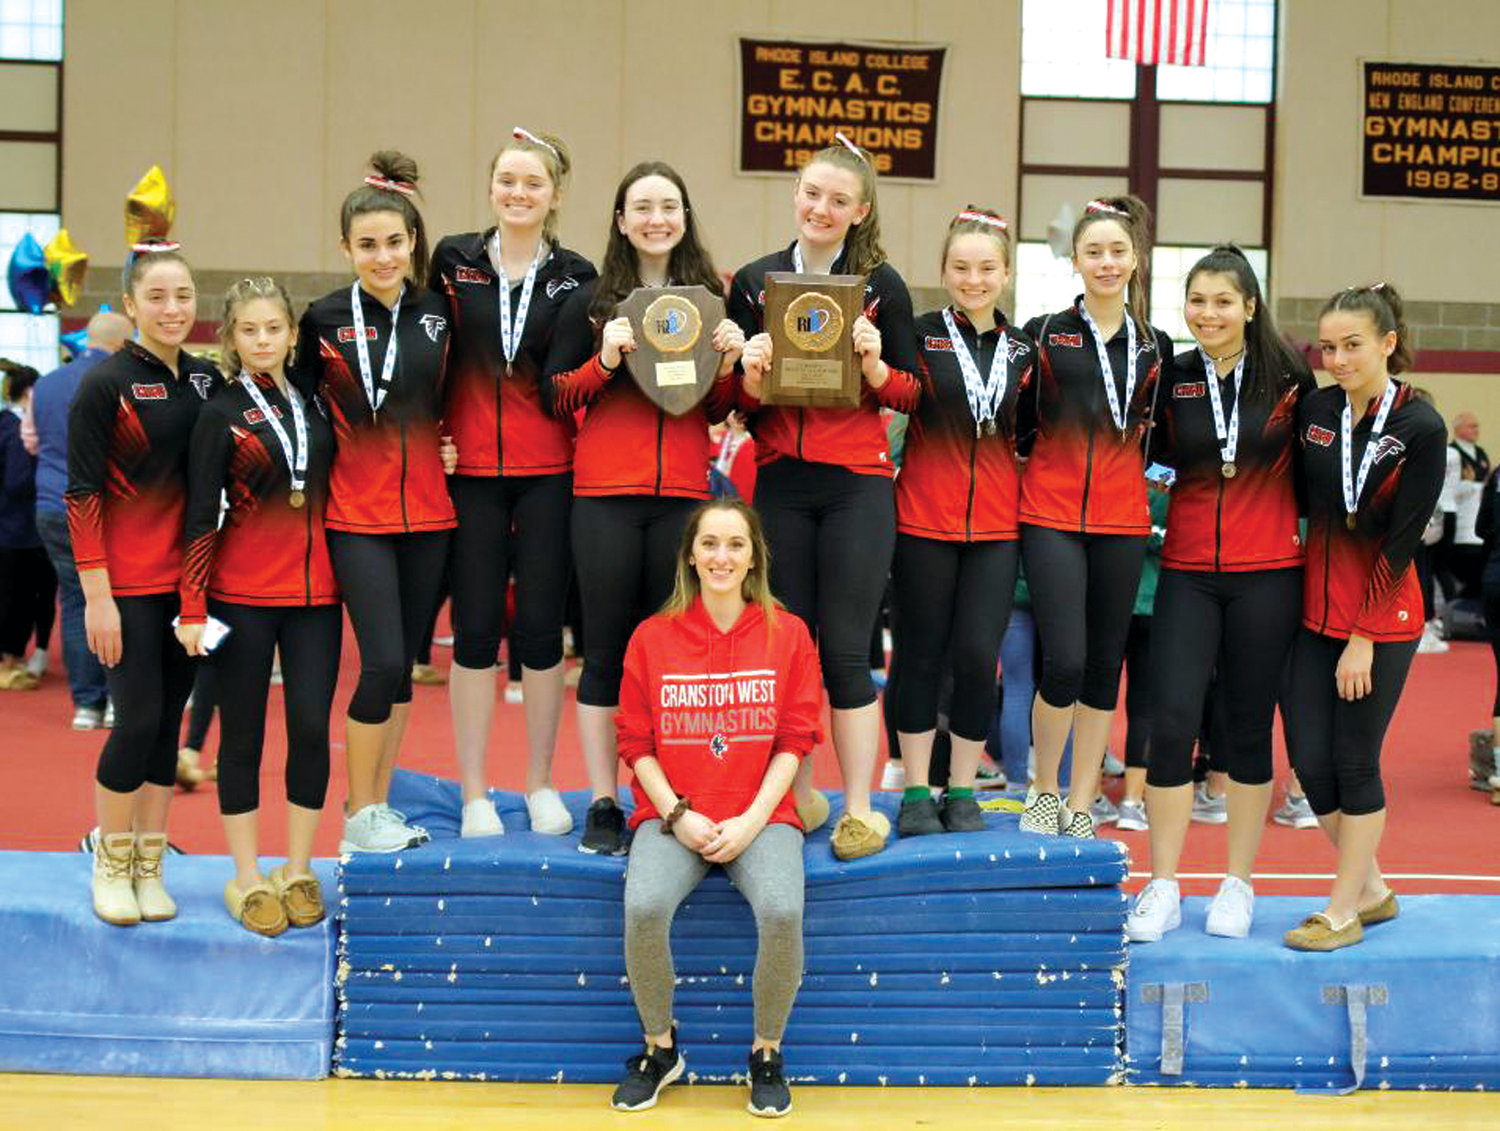 STATE CHAMPS: The Cranston West gymnastics team.